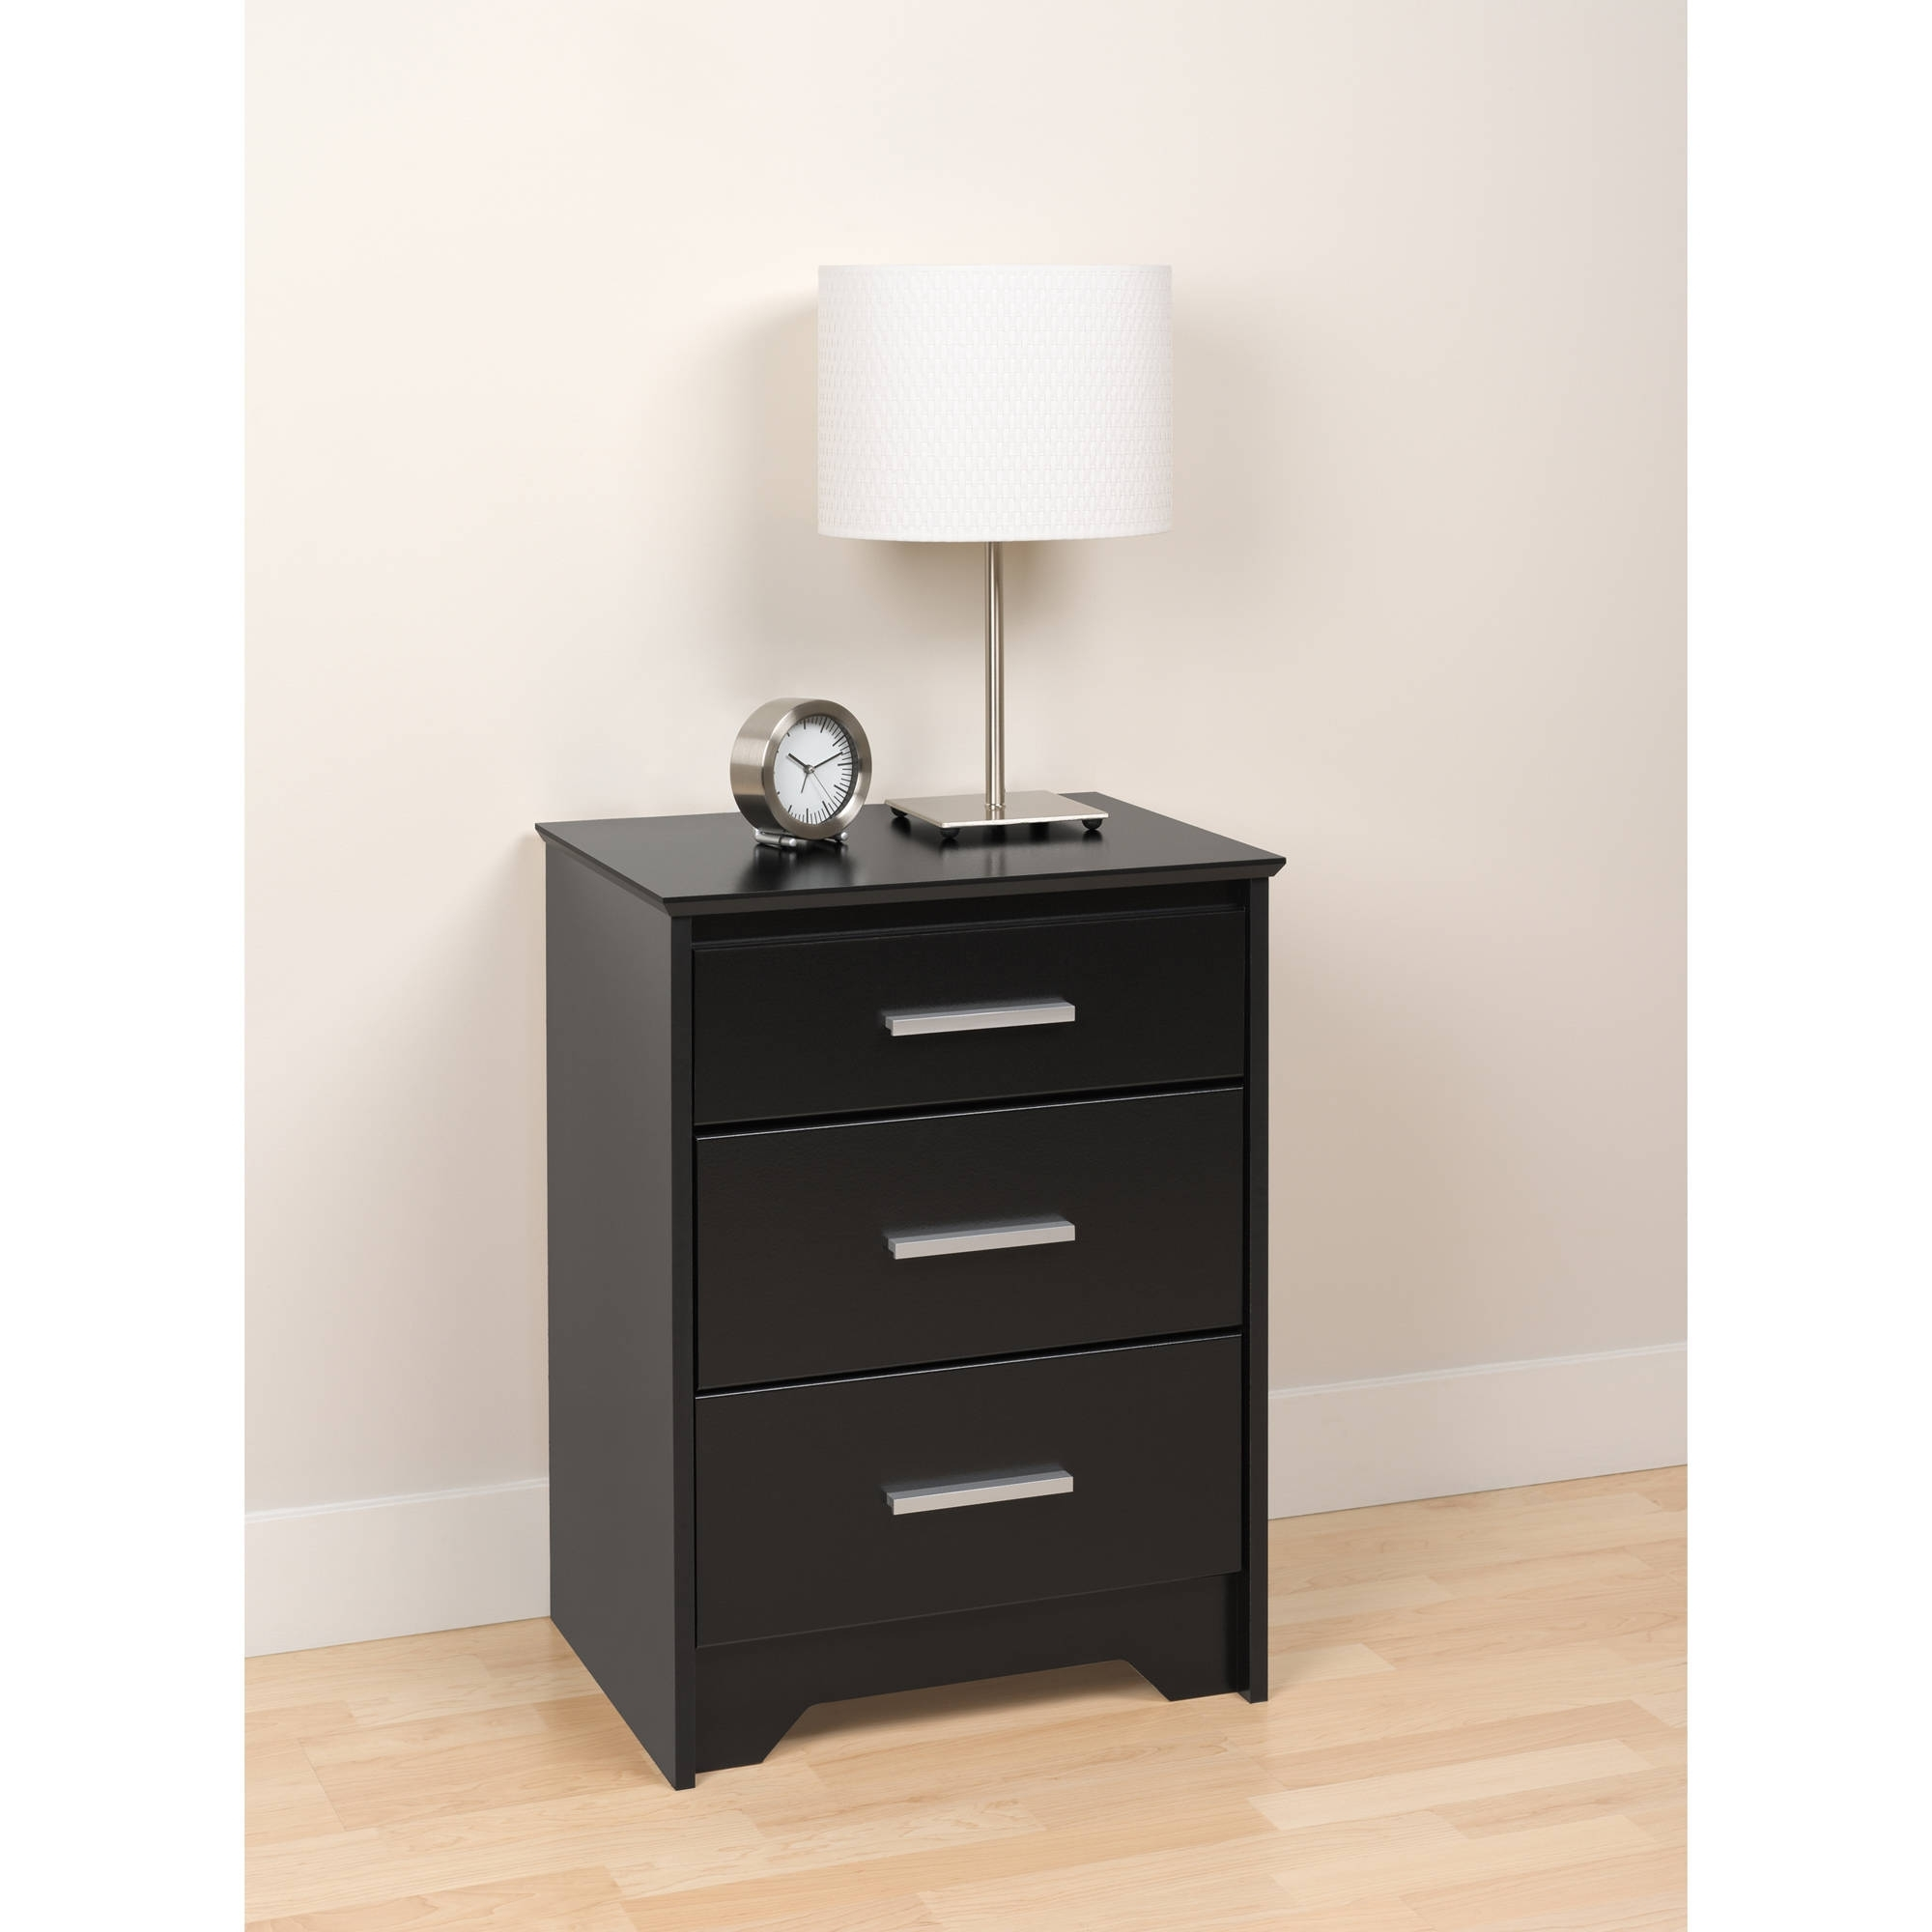 small black end table the home redesign mainstays nightstand ebony ash with accent marble living room chairs floor dividers threshold solid oak tables media console furniture best